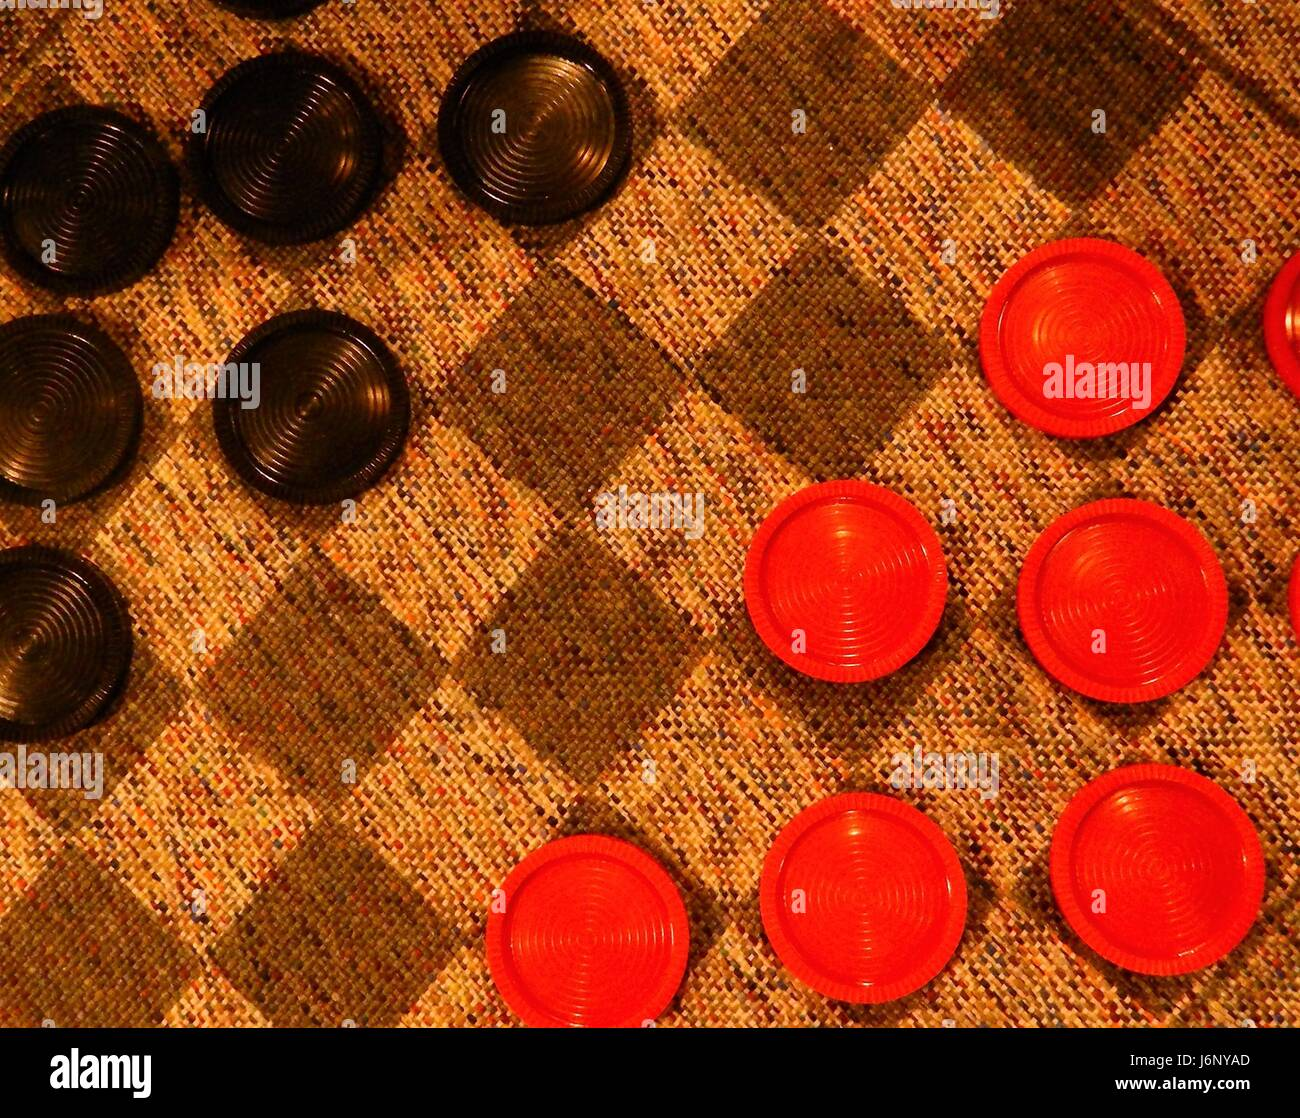 how to set up and play checkers